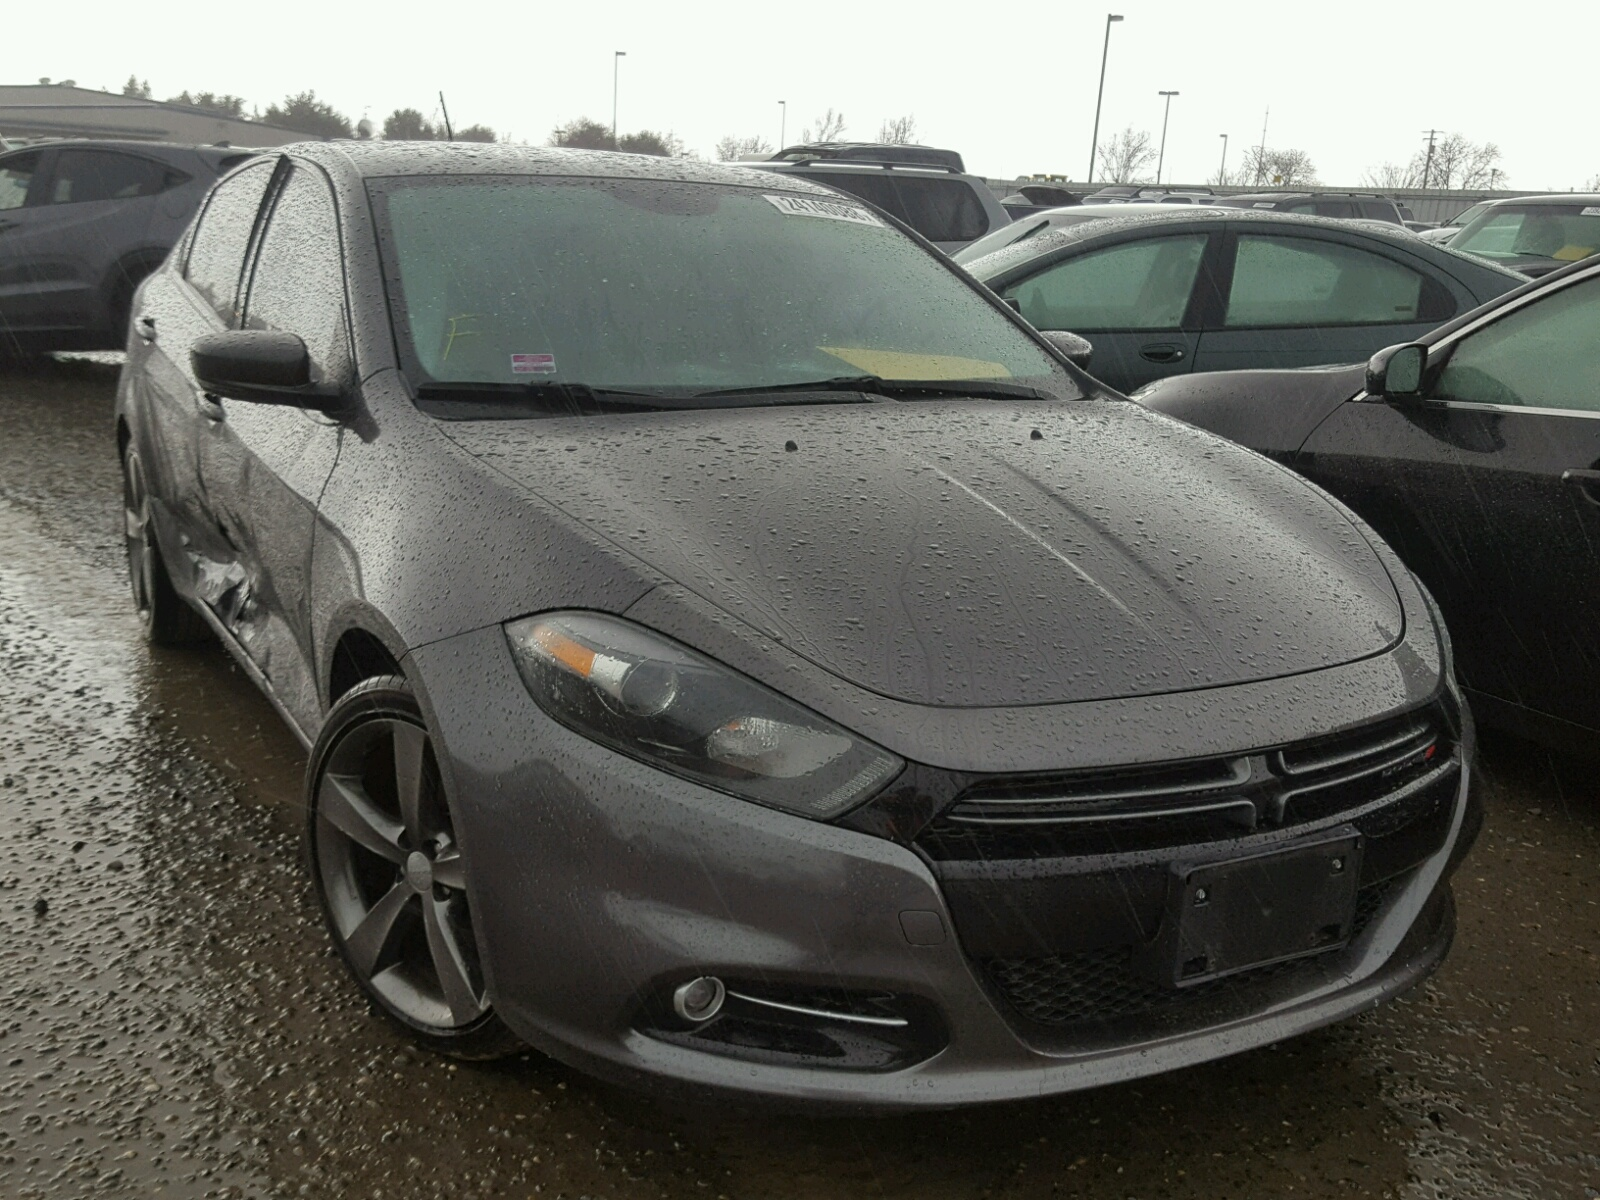 navigation dodge dart leather gt start remote watch exhaust automatic dual sunroof